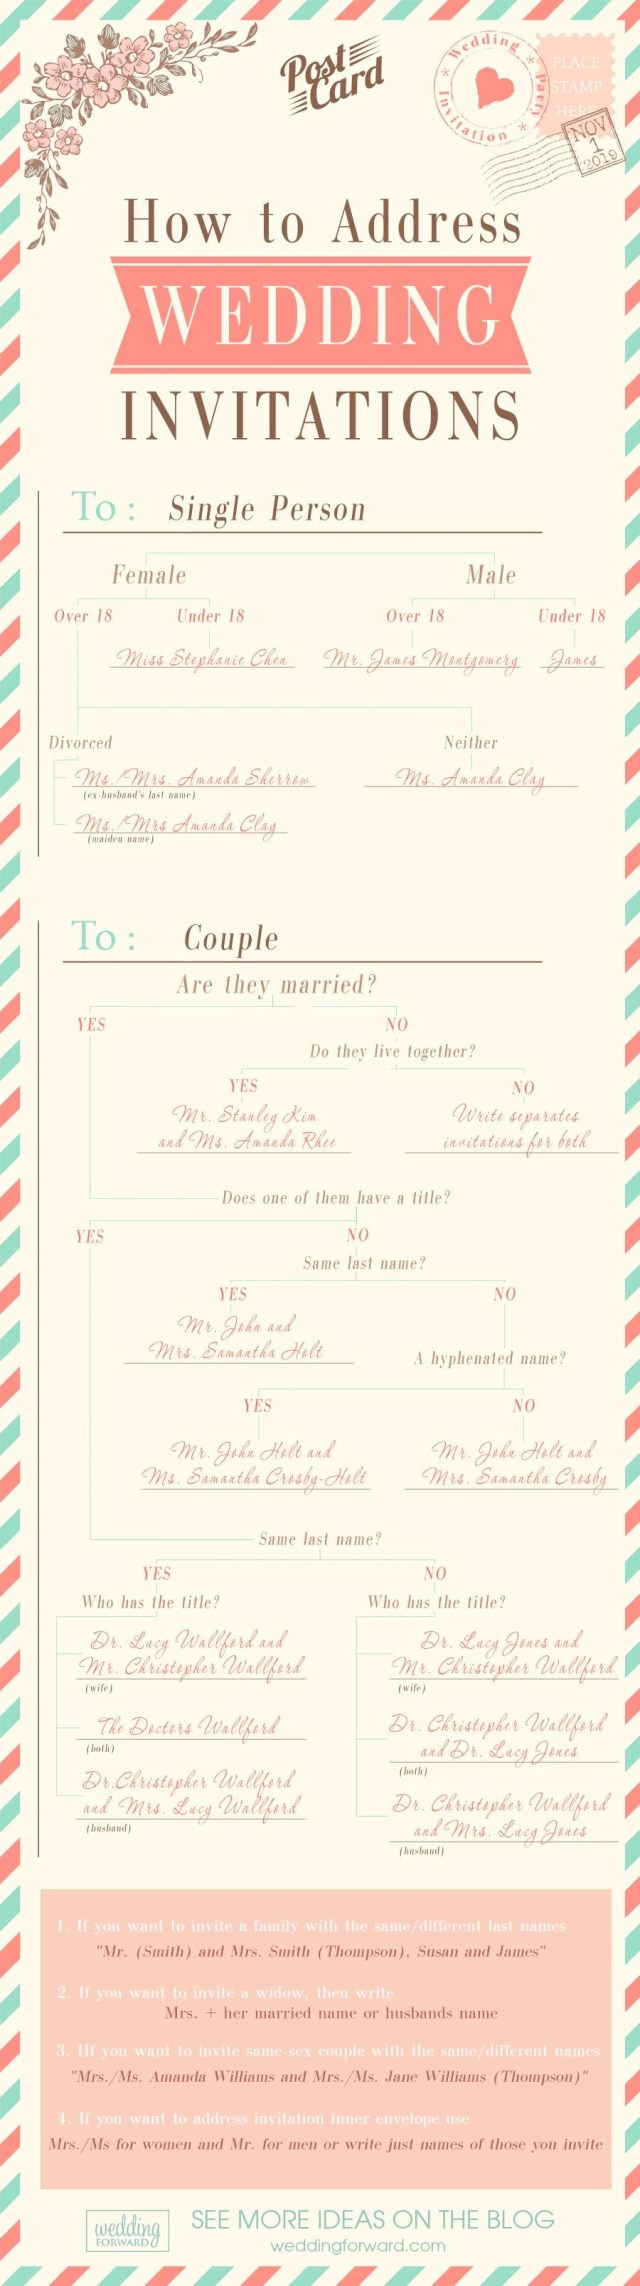 How Do You Address Wedding Invitations 5 Main Rules How To Address Wedding Invitations Wedding Forward